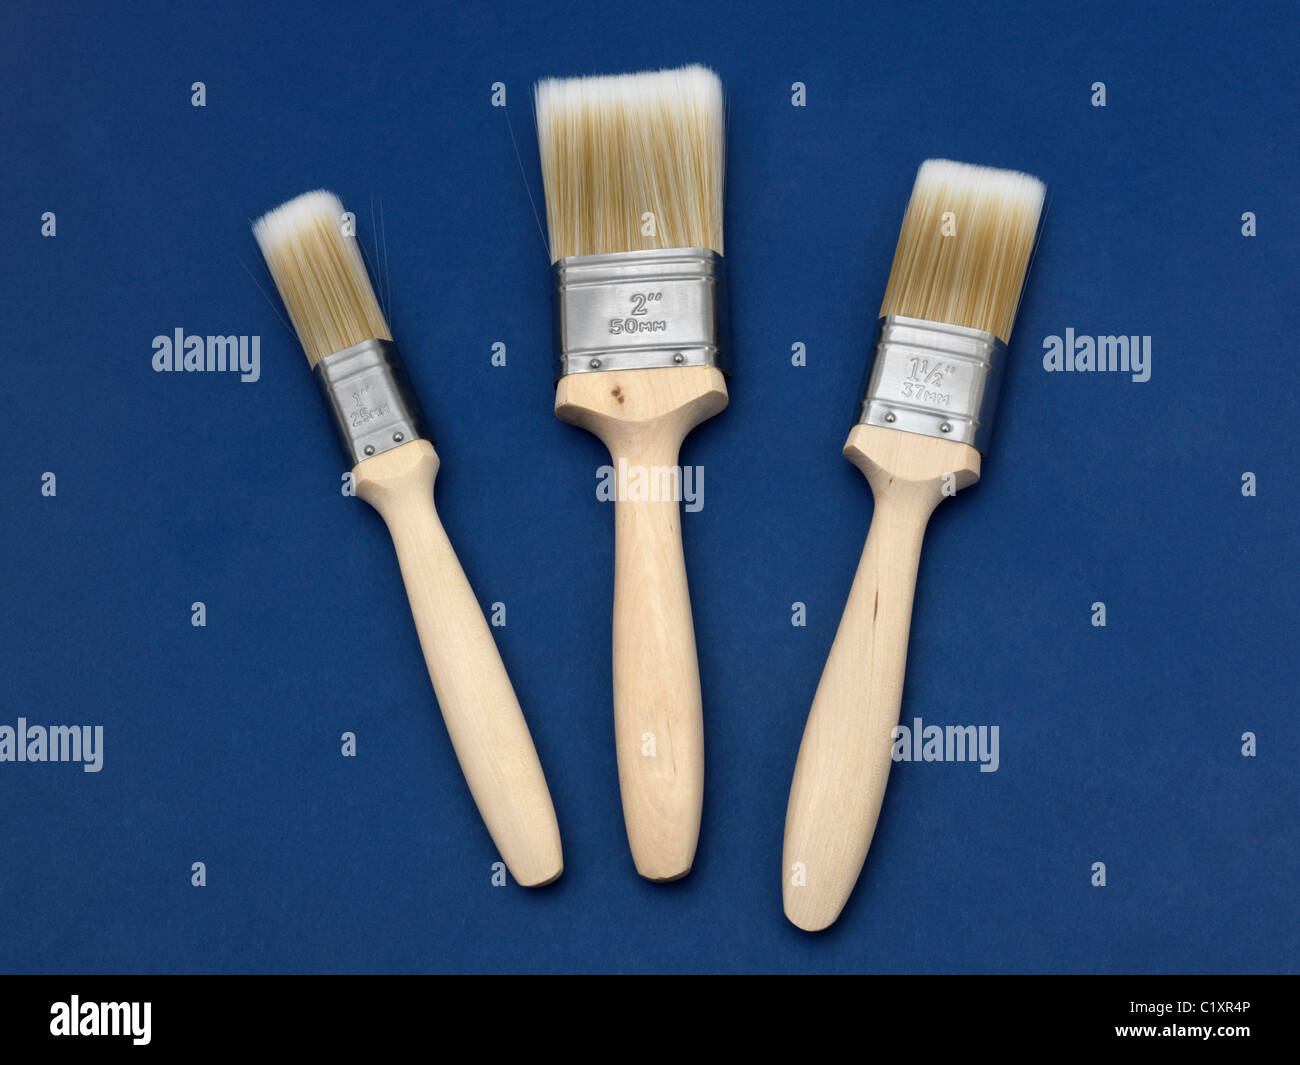 Three Different Sized Flat Brushes - Stock Image